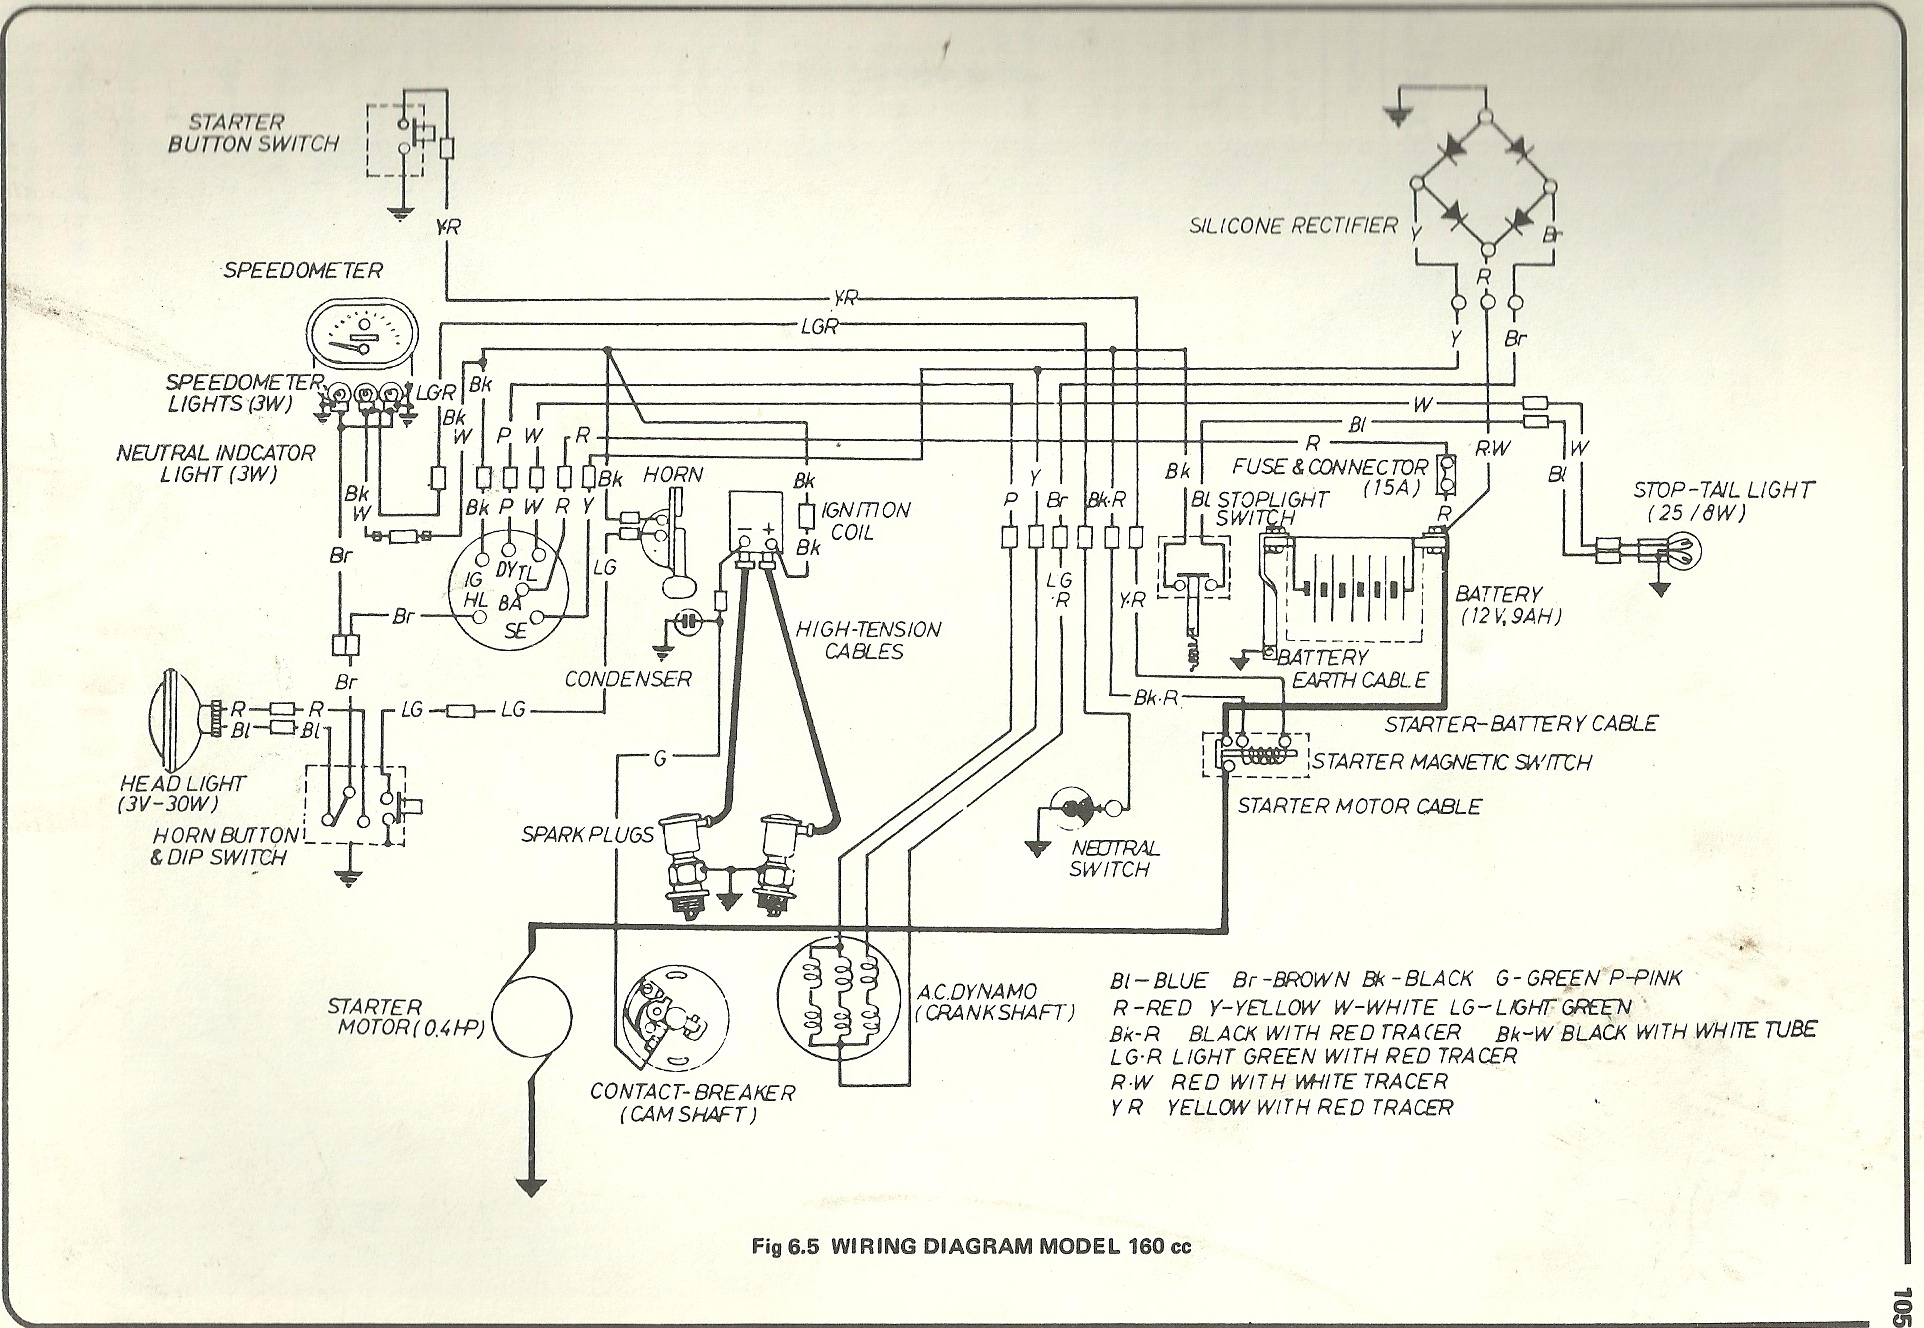 CB1602 wiring diagrams 1980 kawasaki 440 ltd wiring diagram at bakdesigns.co